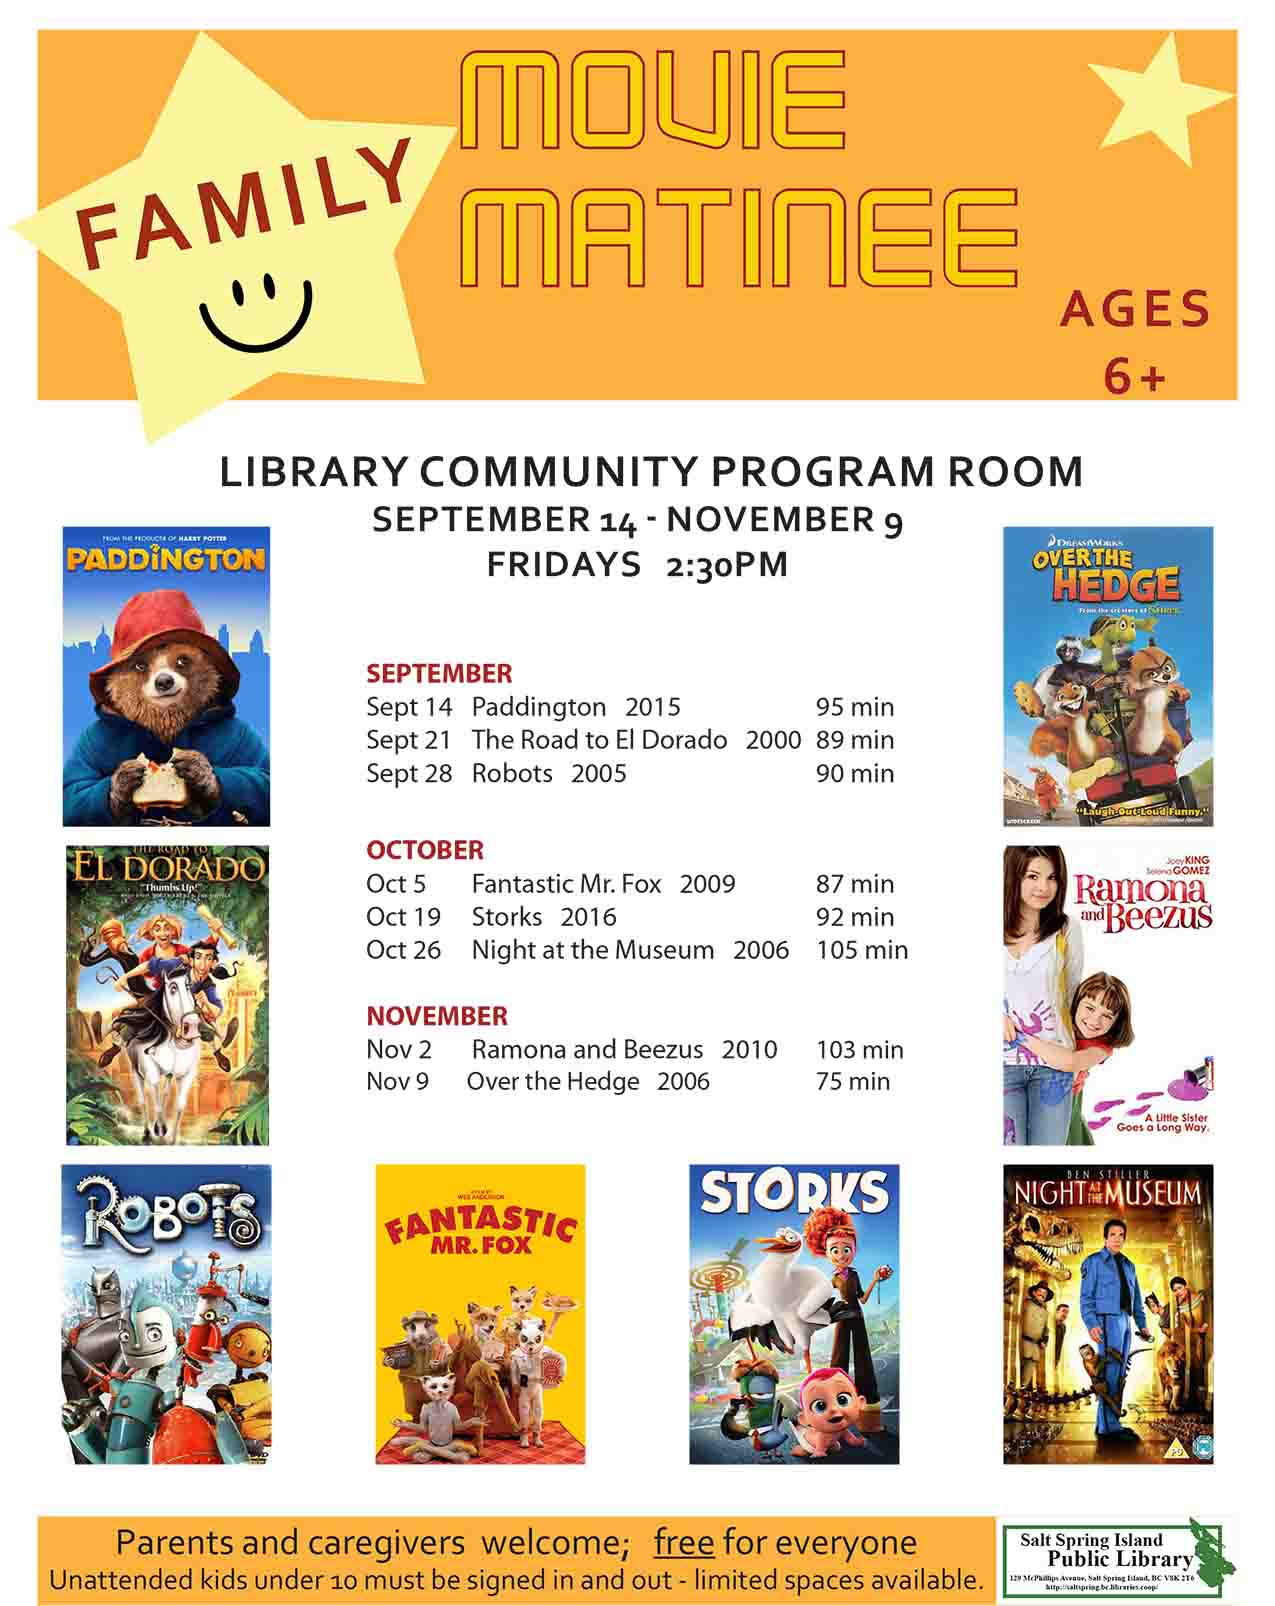 Family Movie Matinee @ Community Program Room